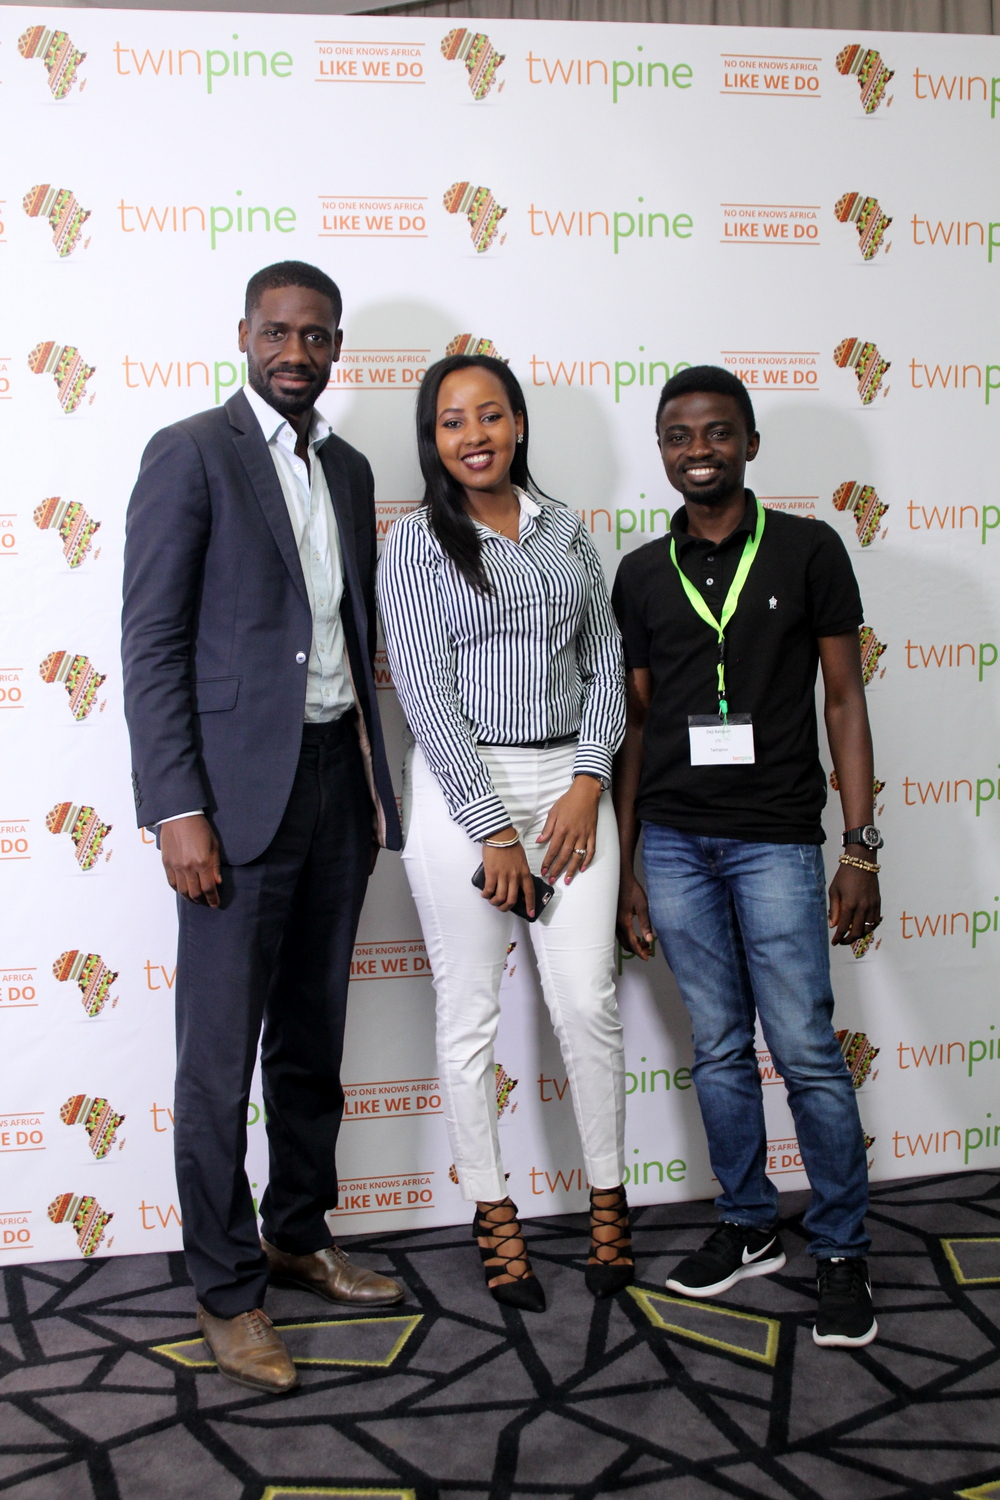 Guy-Bertrand Njoya, Synekas Consult; Teresia Kinuthia, Regional Manager, East and Central Africa, Terragon; Ayodeji Balogun, Chief Technology Officer, Twinpine